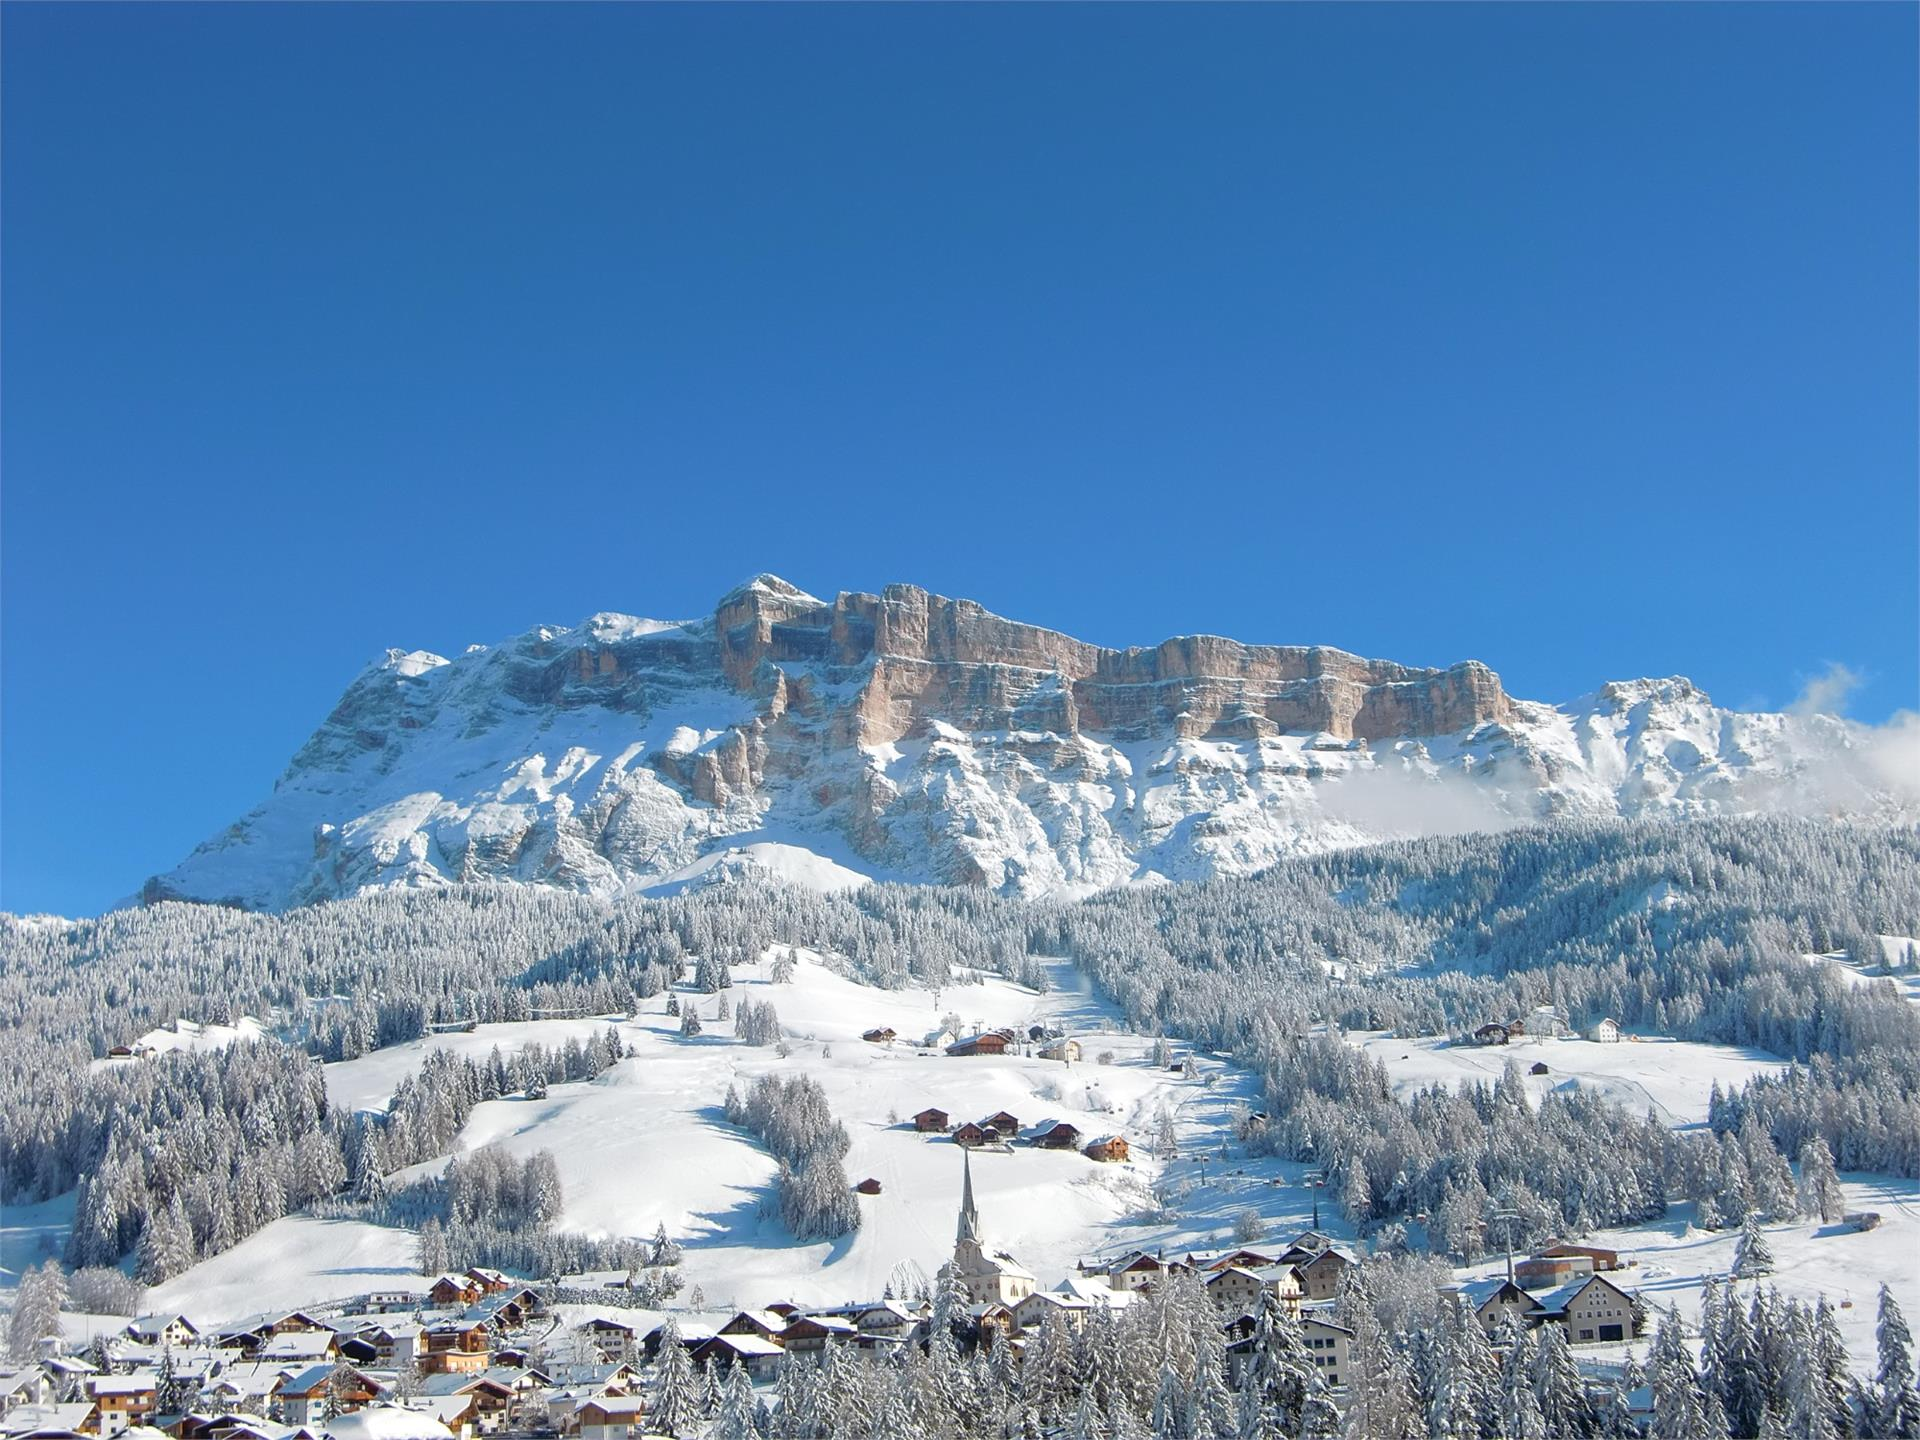 Excursion with snowshoes from San Cassiano to Sas dla Crusc/Santa Croce and Badia